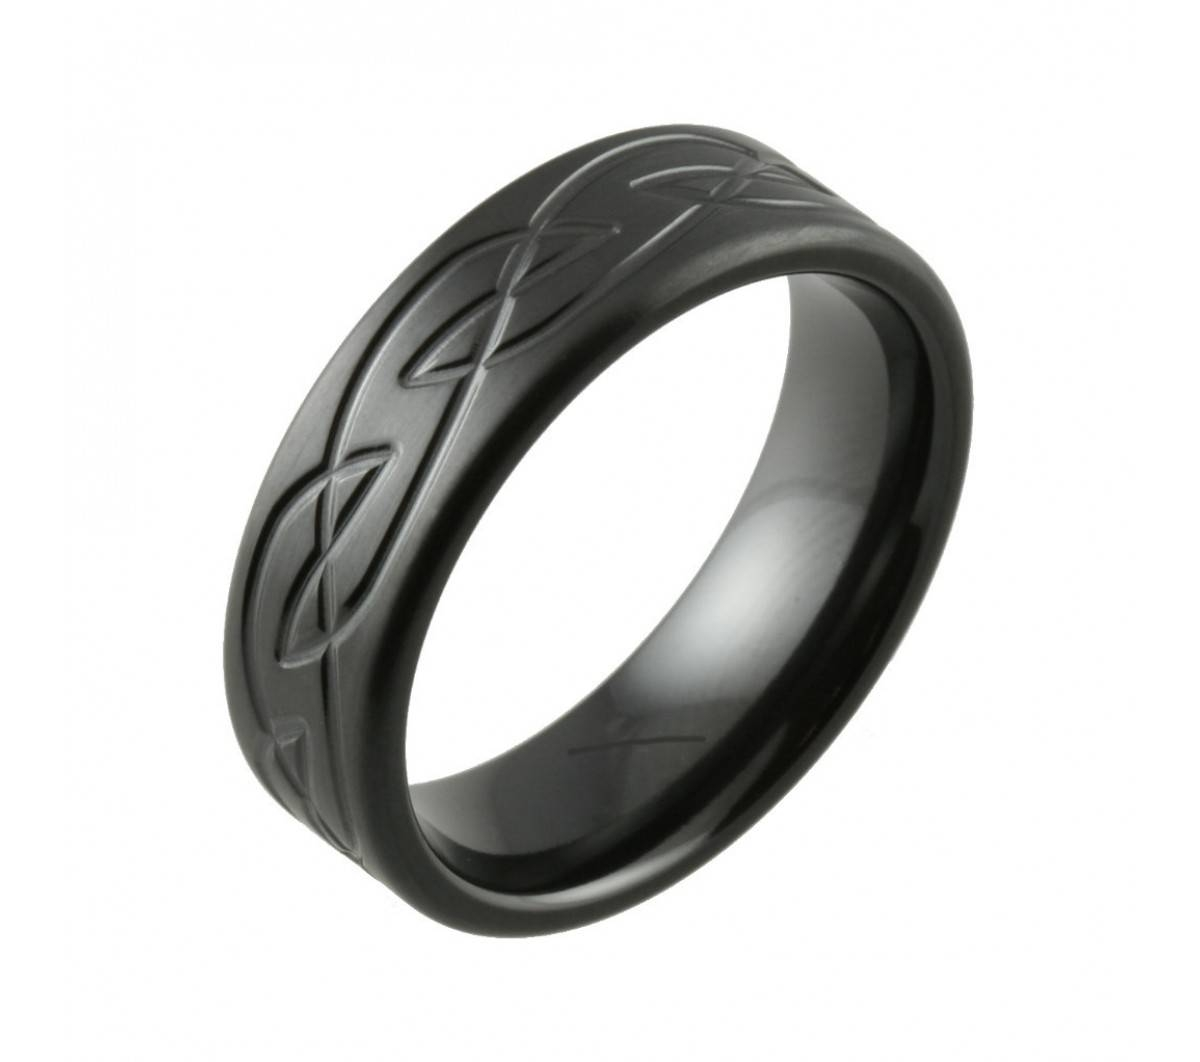 Celtic Knot Satin Finish Black Zirconium Wedding Ring For Black Zirconium Wedding Bands (View 5 of 15)